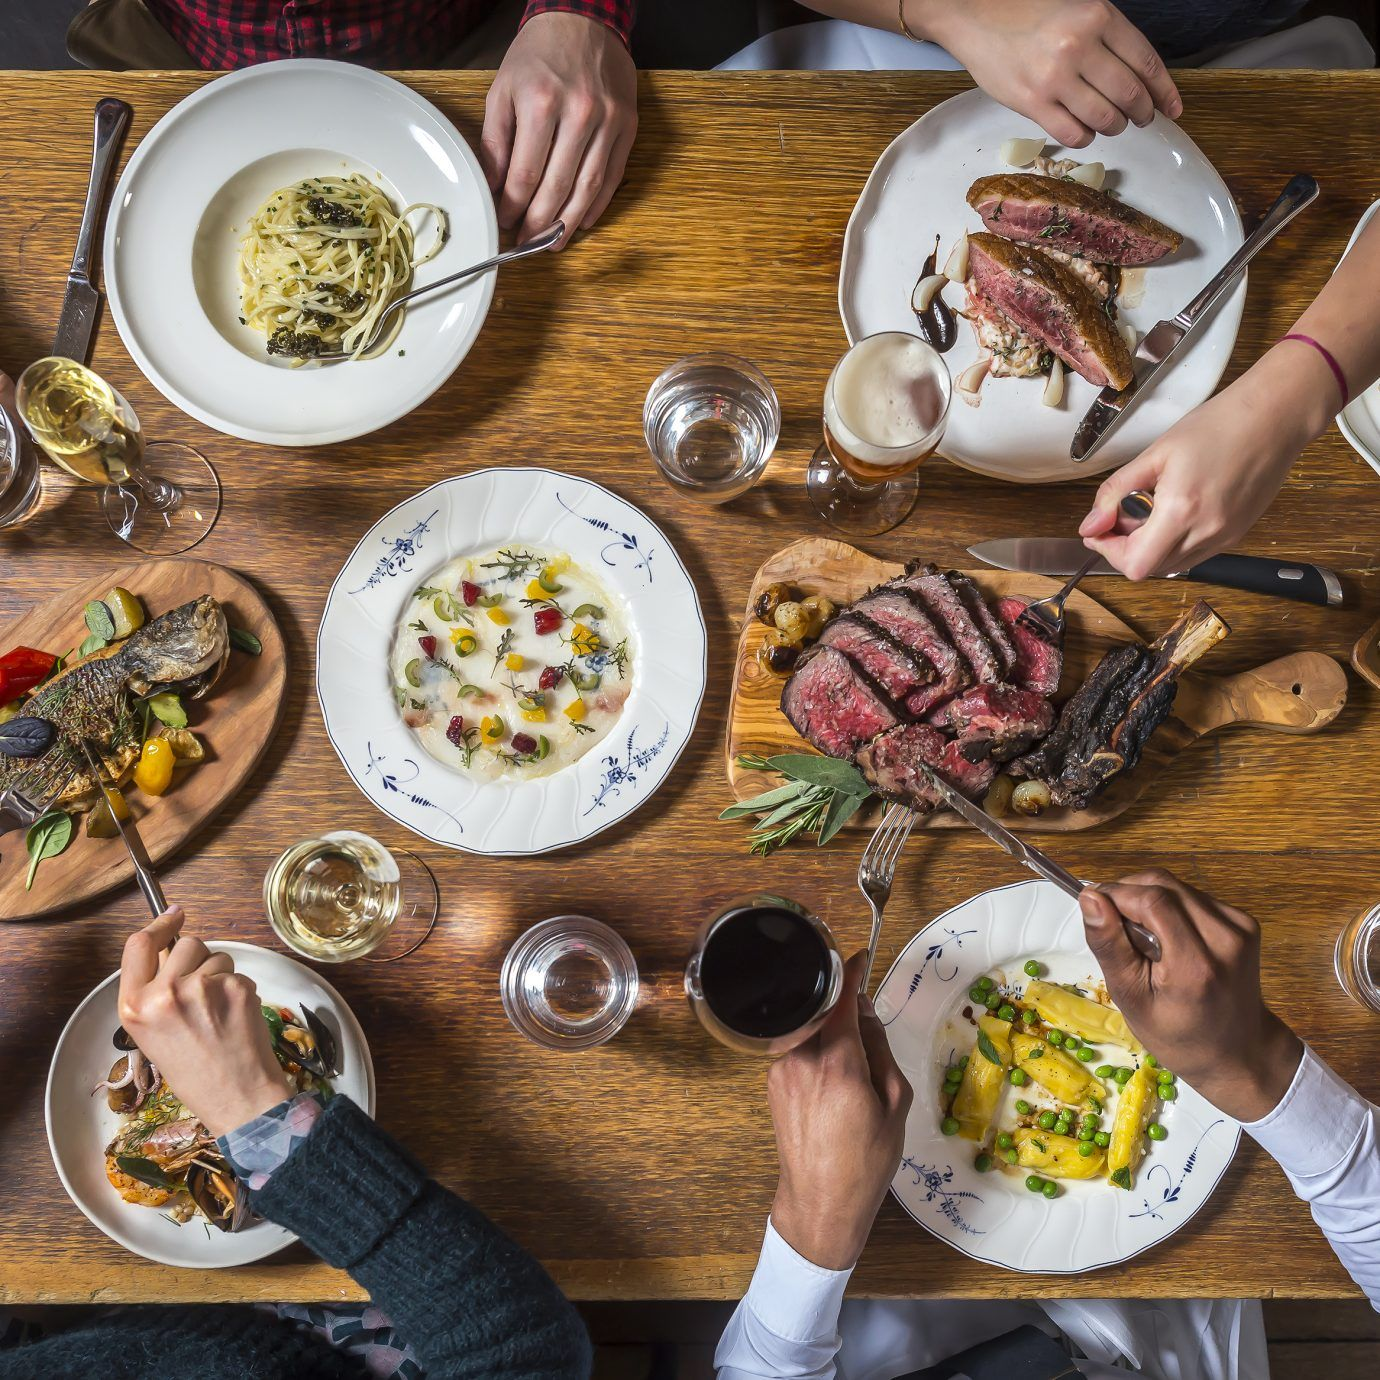 The Best Places to Eat in Brooklyn 10 Restaurants We Love